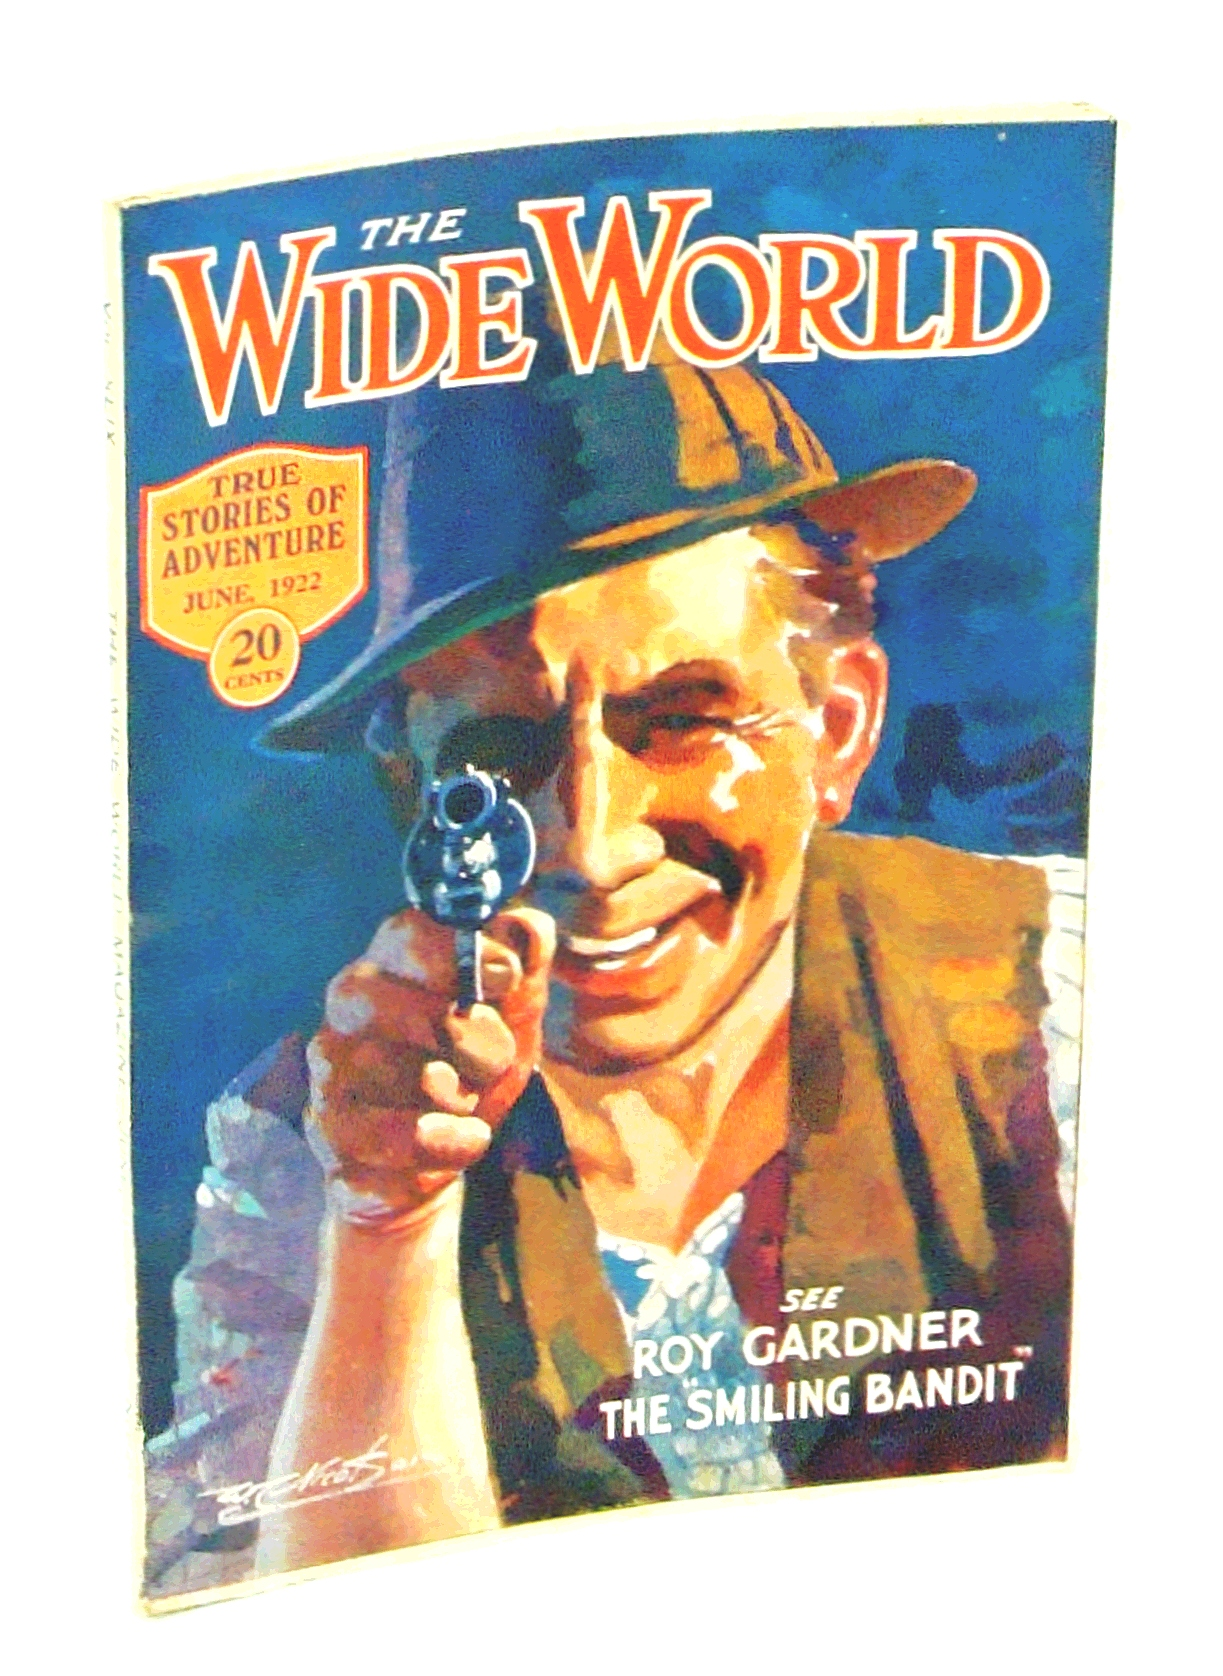 """Image for The Wide World, True Stories of Adventure, June 1922, Vol. 49, No. 290: Cover Illustration of Roy Gardner, The """"Smiling Bandit"""""""